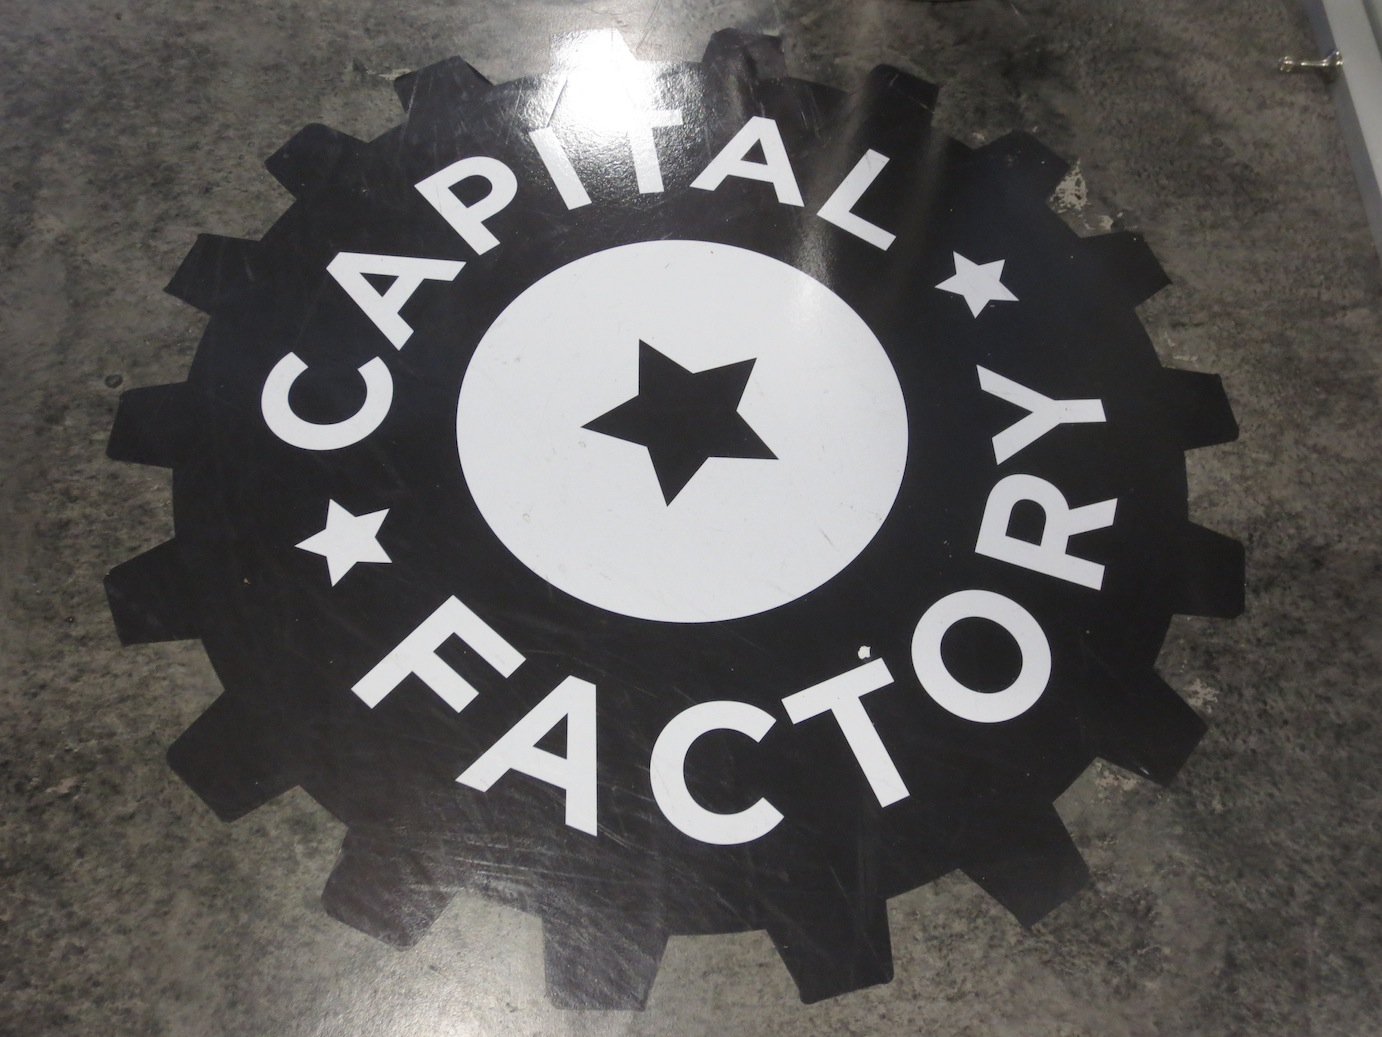 The logo for Capital Factory on the floor of their working space